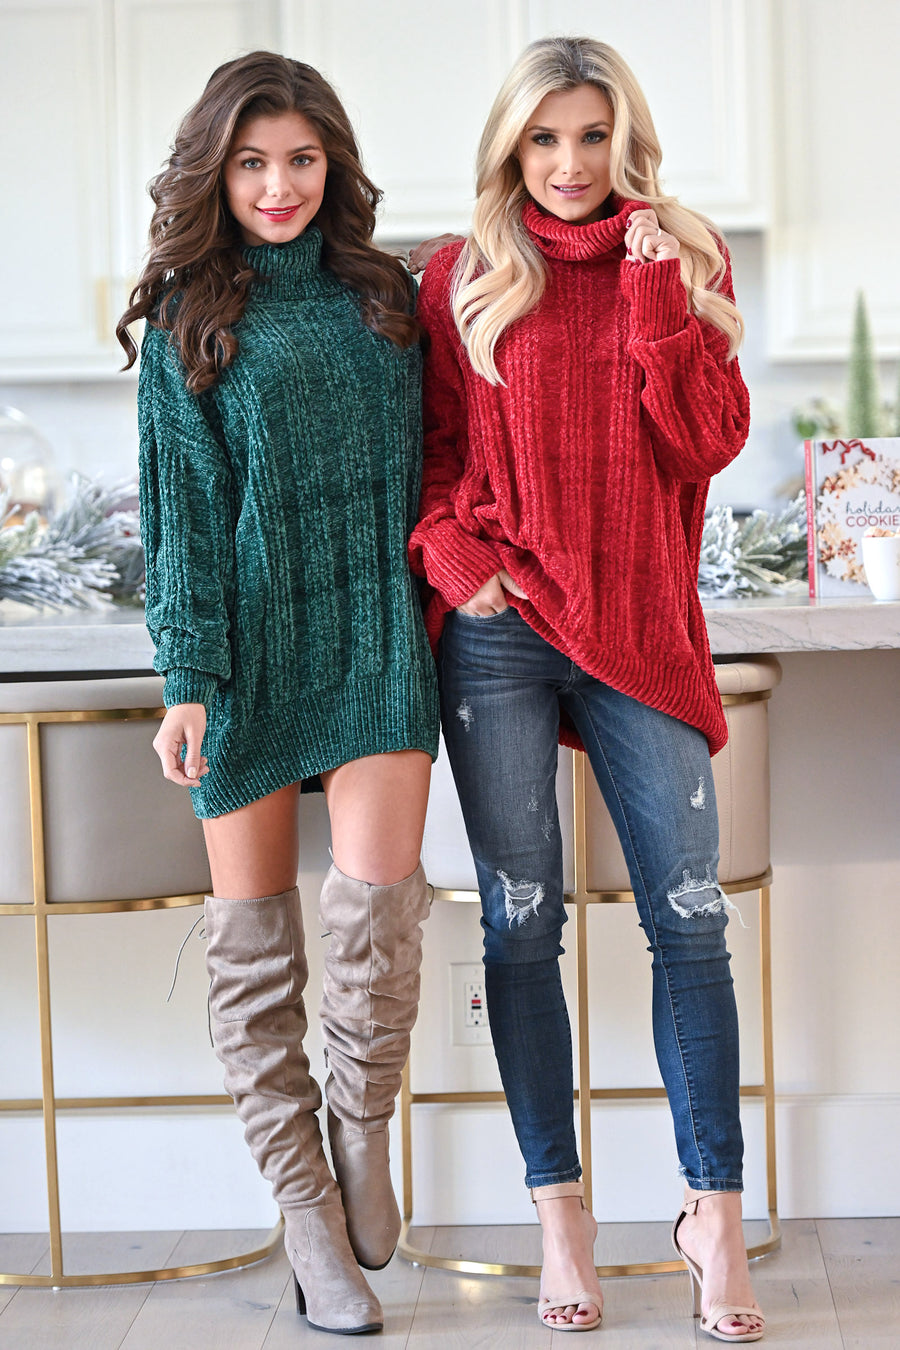 Feels Just Right Turtleneck Sweater - Cranberry women's oversized chunky pullover sweater, closet candy boutique 1